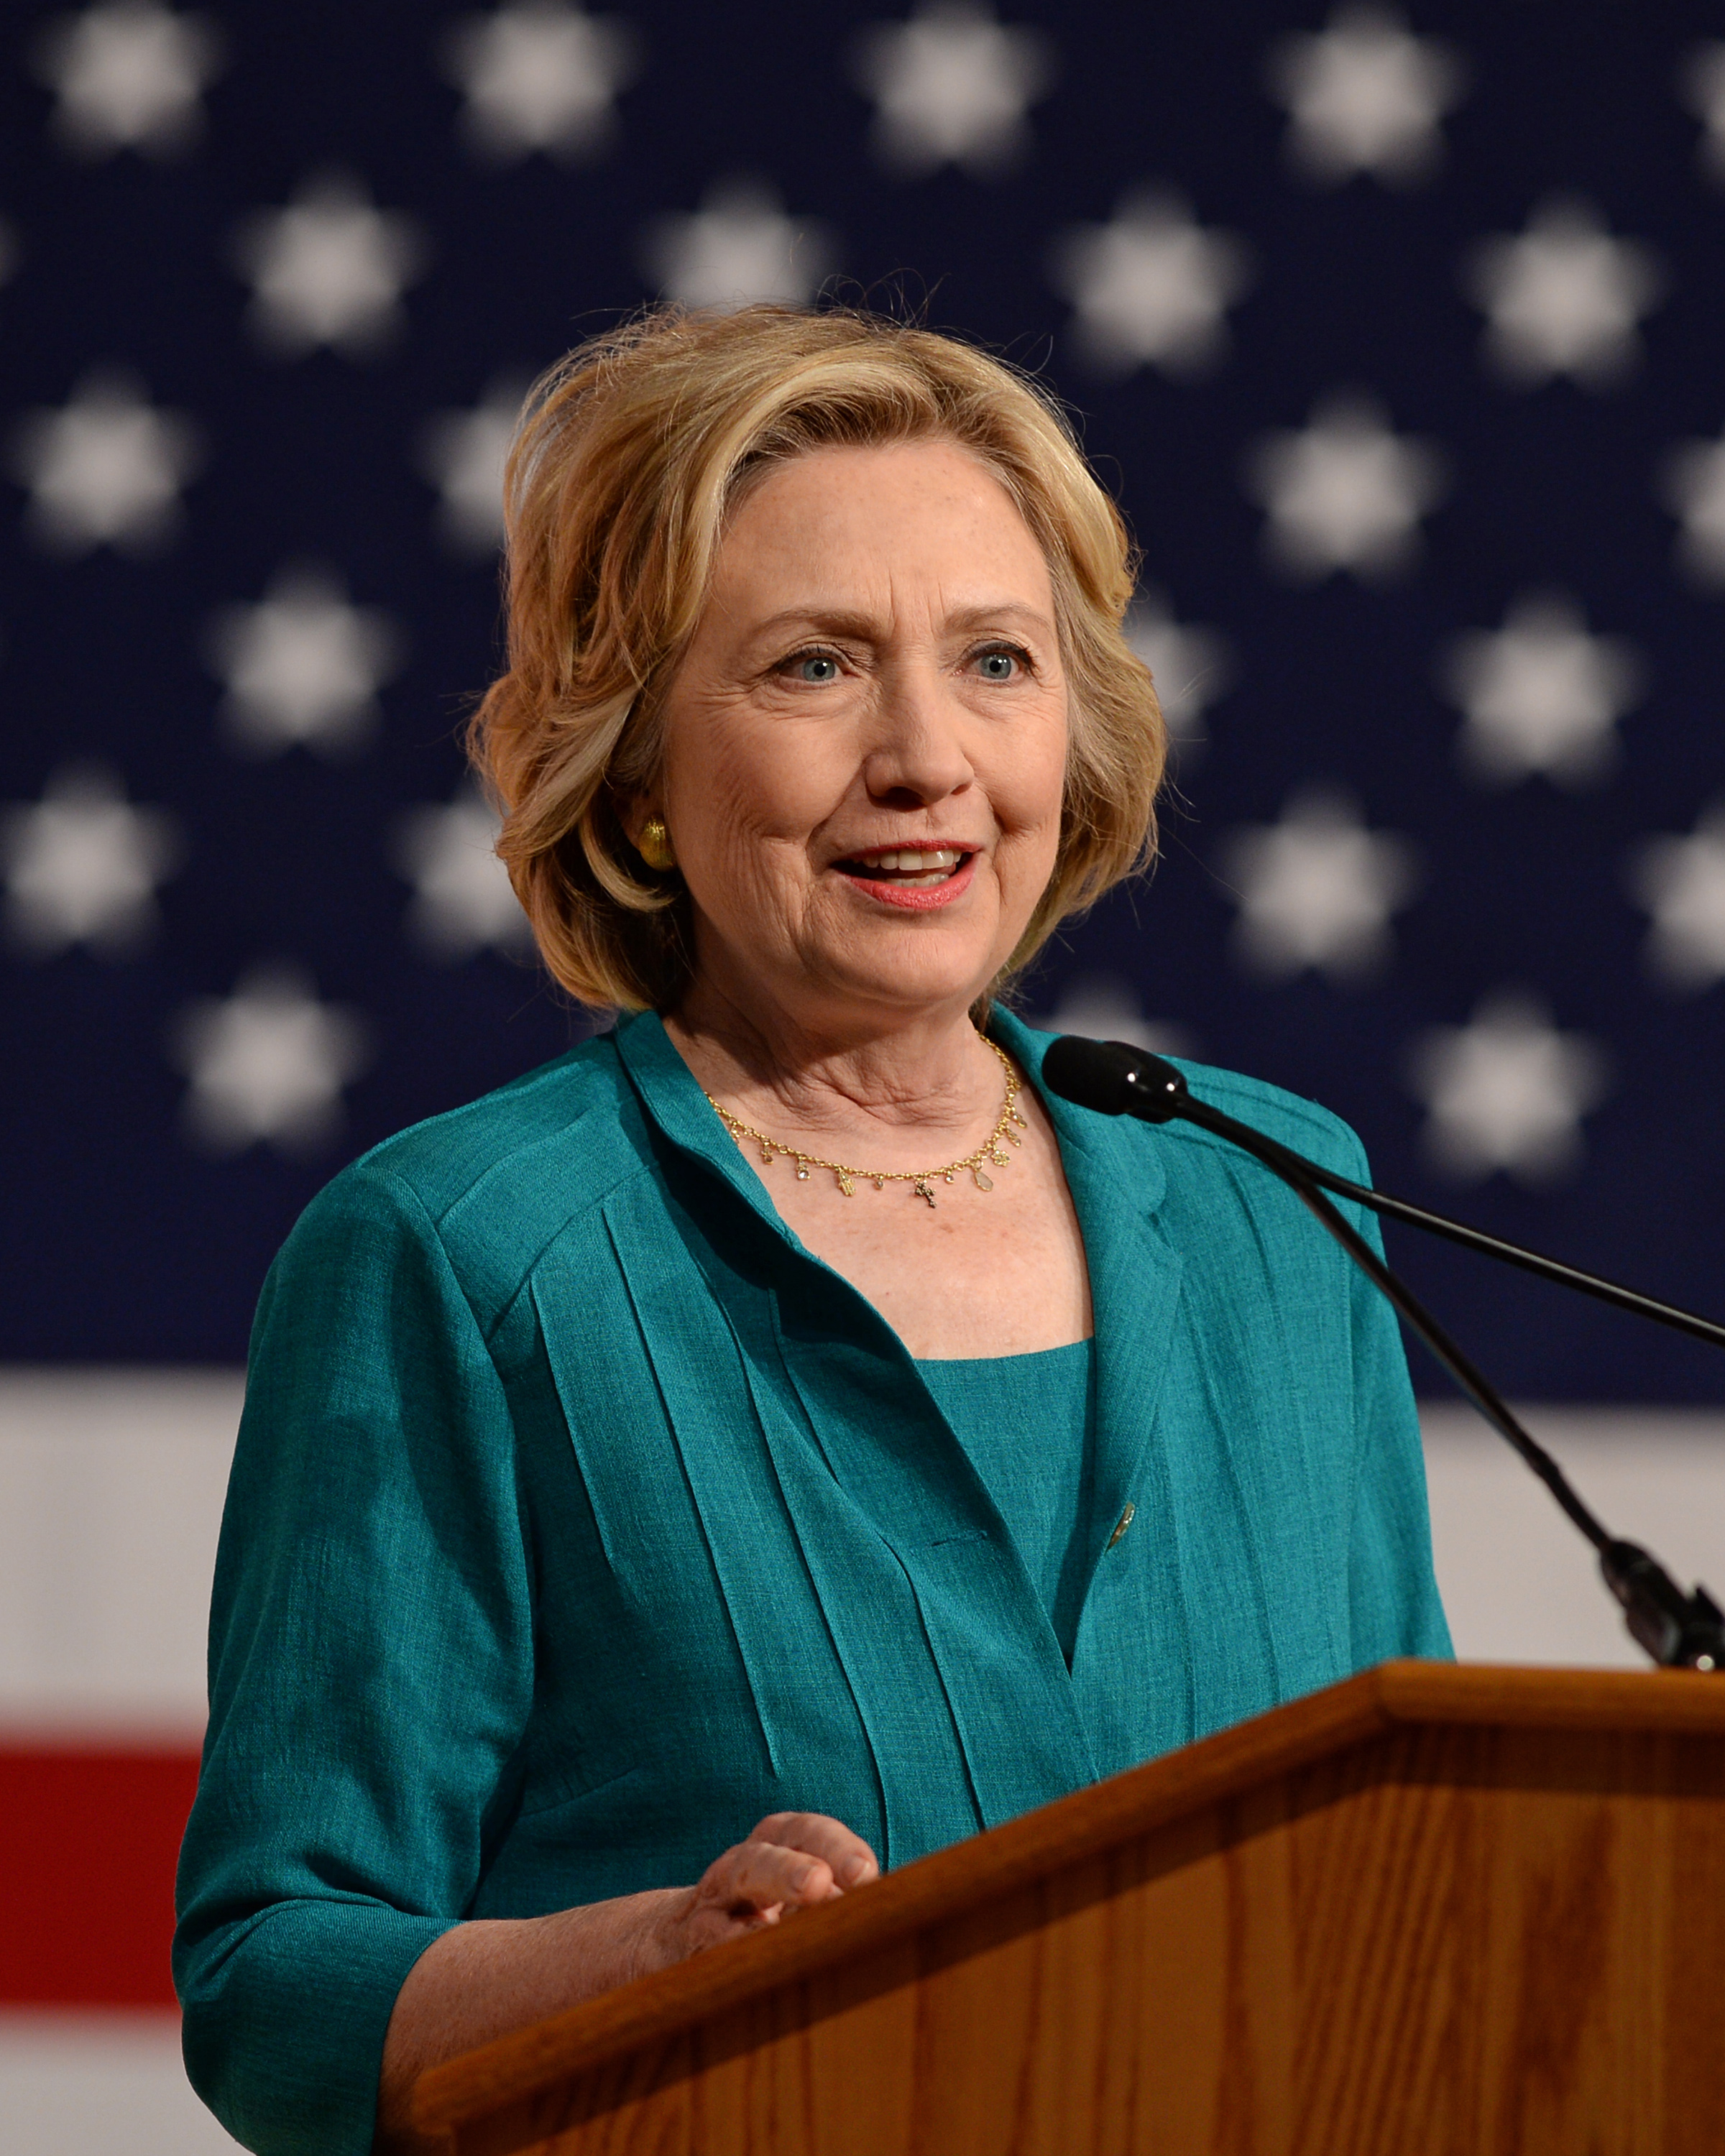 Former First Lady and Secretary Of State Hillary Rodham Clinton speaks during a campaign stop at Florida International University on July 31, 2015 in Miami, Florida.